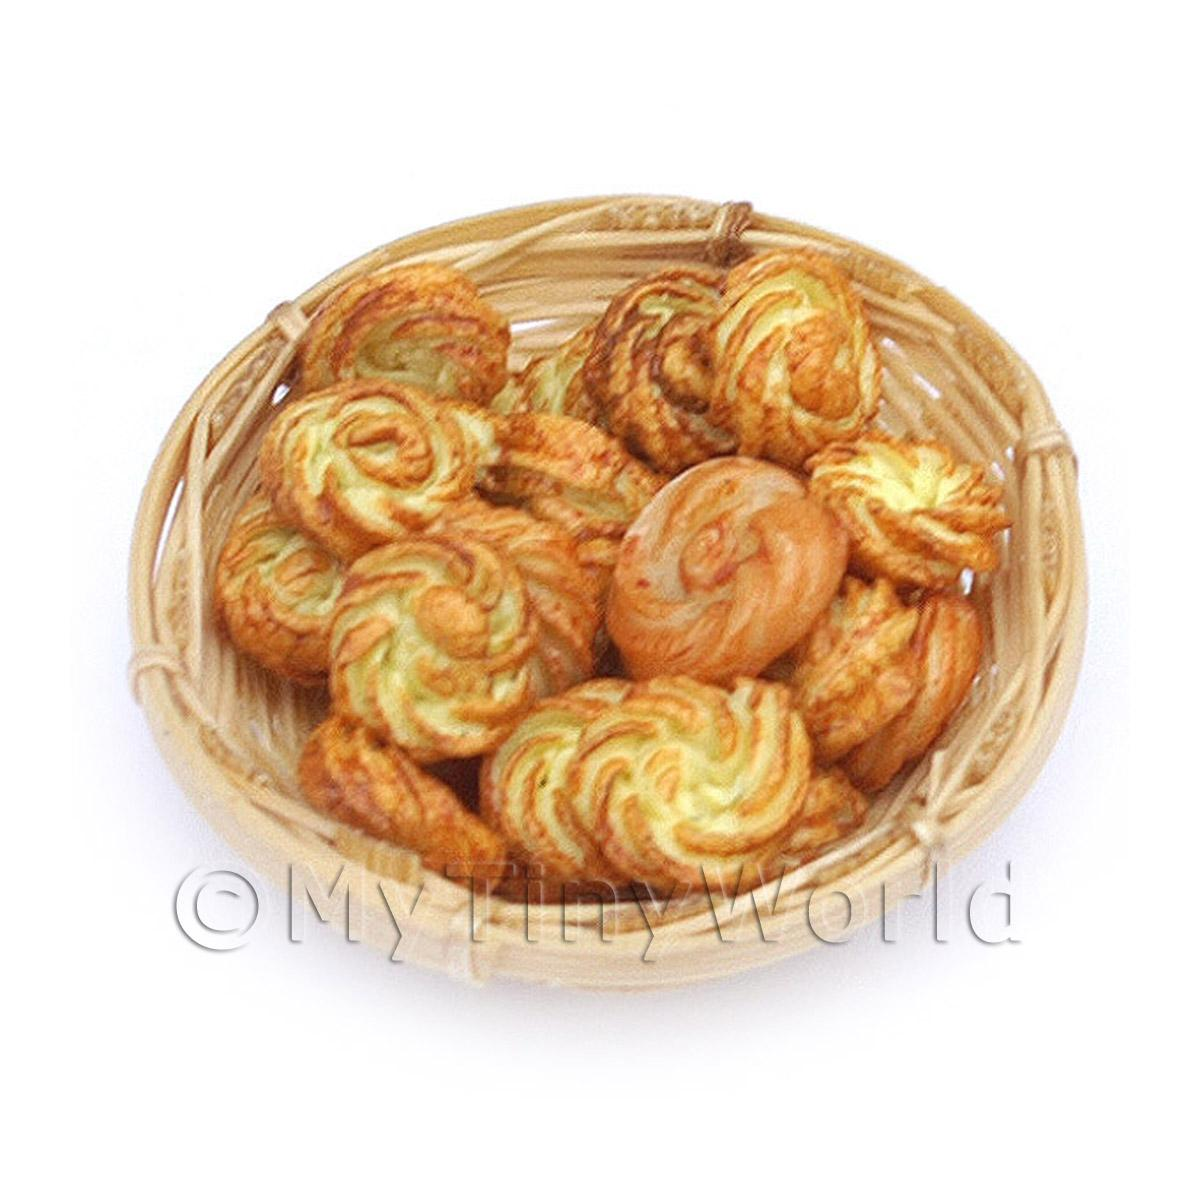 15 Dolls House Miniature Viennese Swirls In A Small Basket